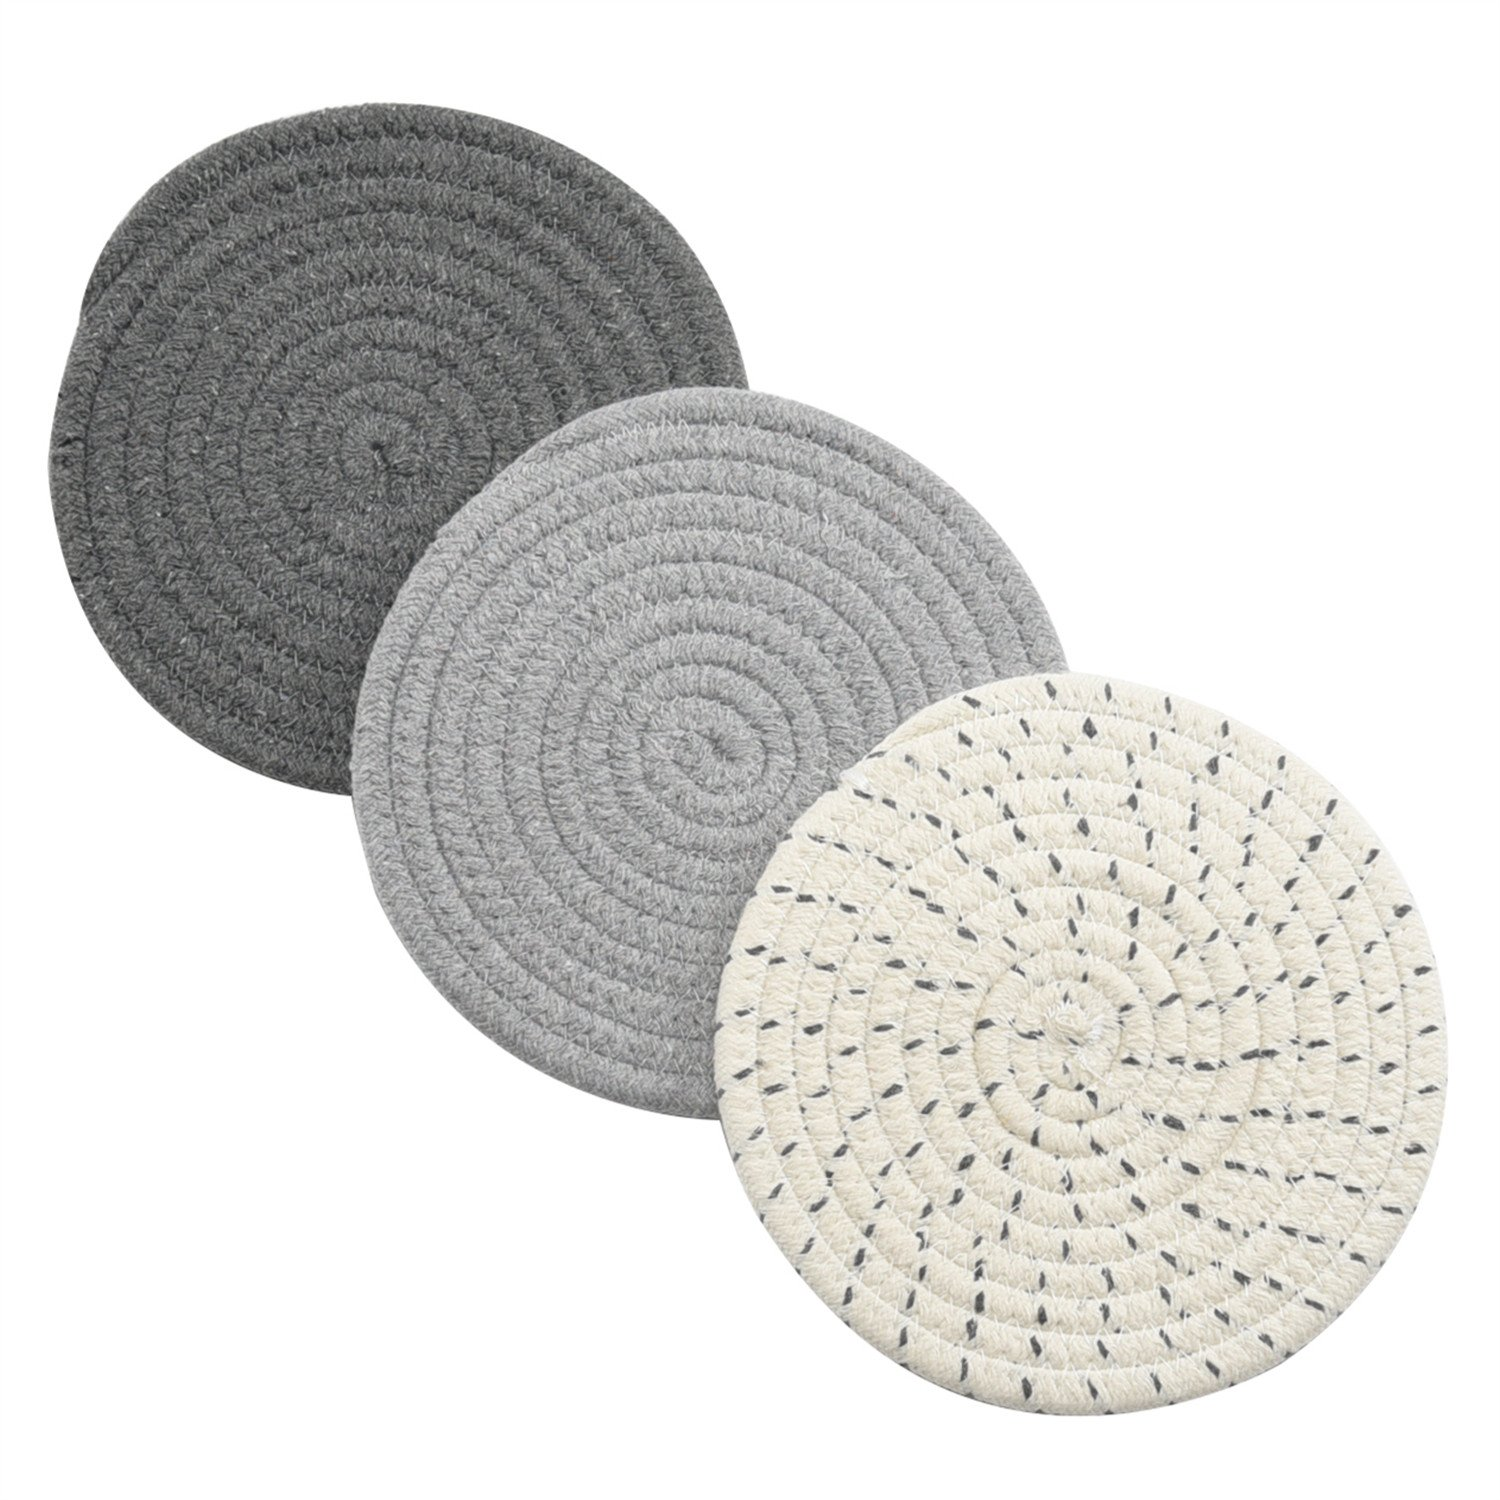 Kitchen Pot Holders Set Trivets Set 100% Pure Cotton Thread Weave Hot Pot Holders Set (Set of 3) Stylish Coasters, Hot Pads, Hot Mats, Spoon Rest for Cooking and Baking by Diameter 7 Inches (Blue) Jennice House